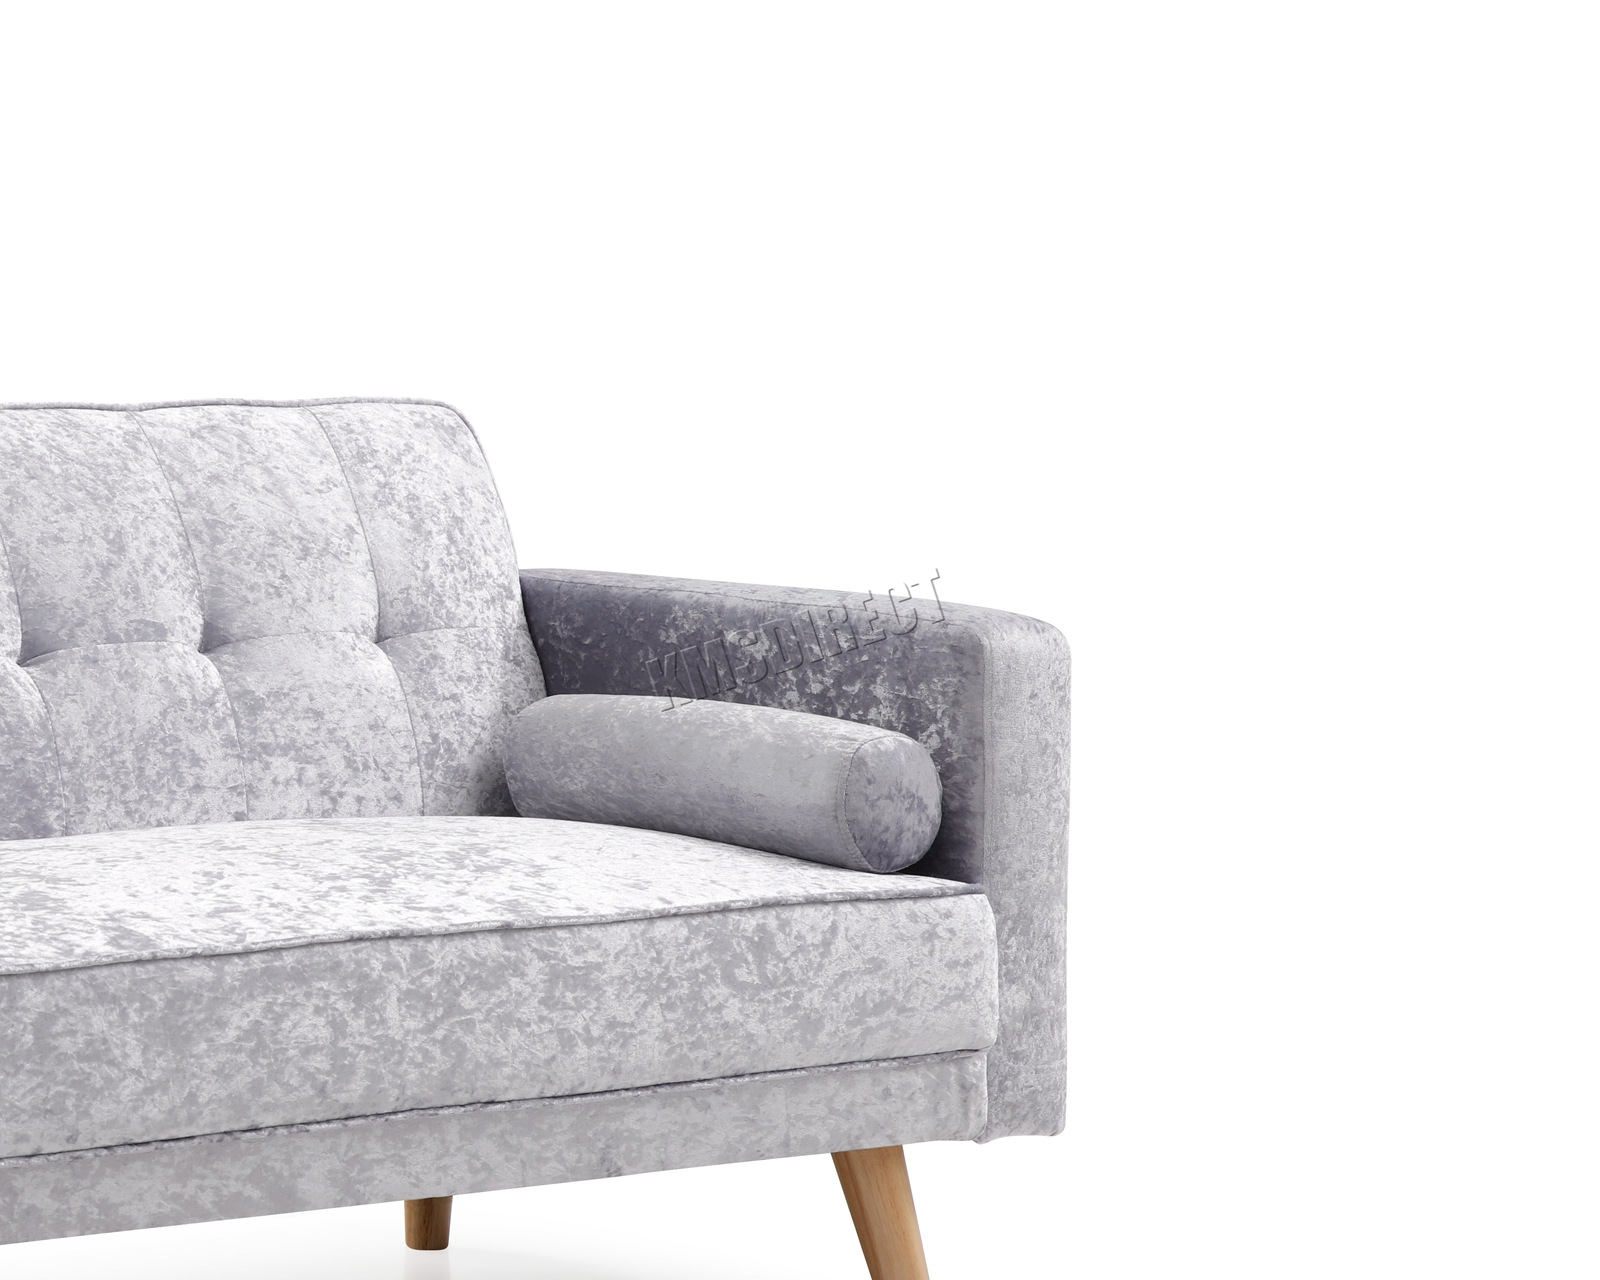 WestWood-Fabric-Sofa-Bed-3-Seater-Couch-Luxury-Modern-Home-Furniture-FSB04-New thumbnail 36